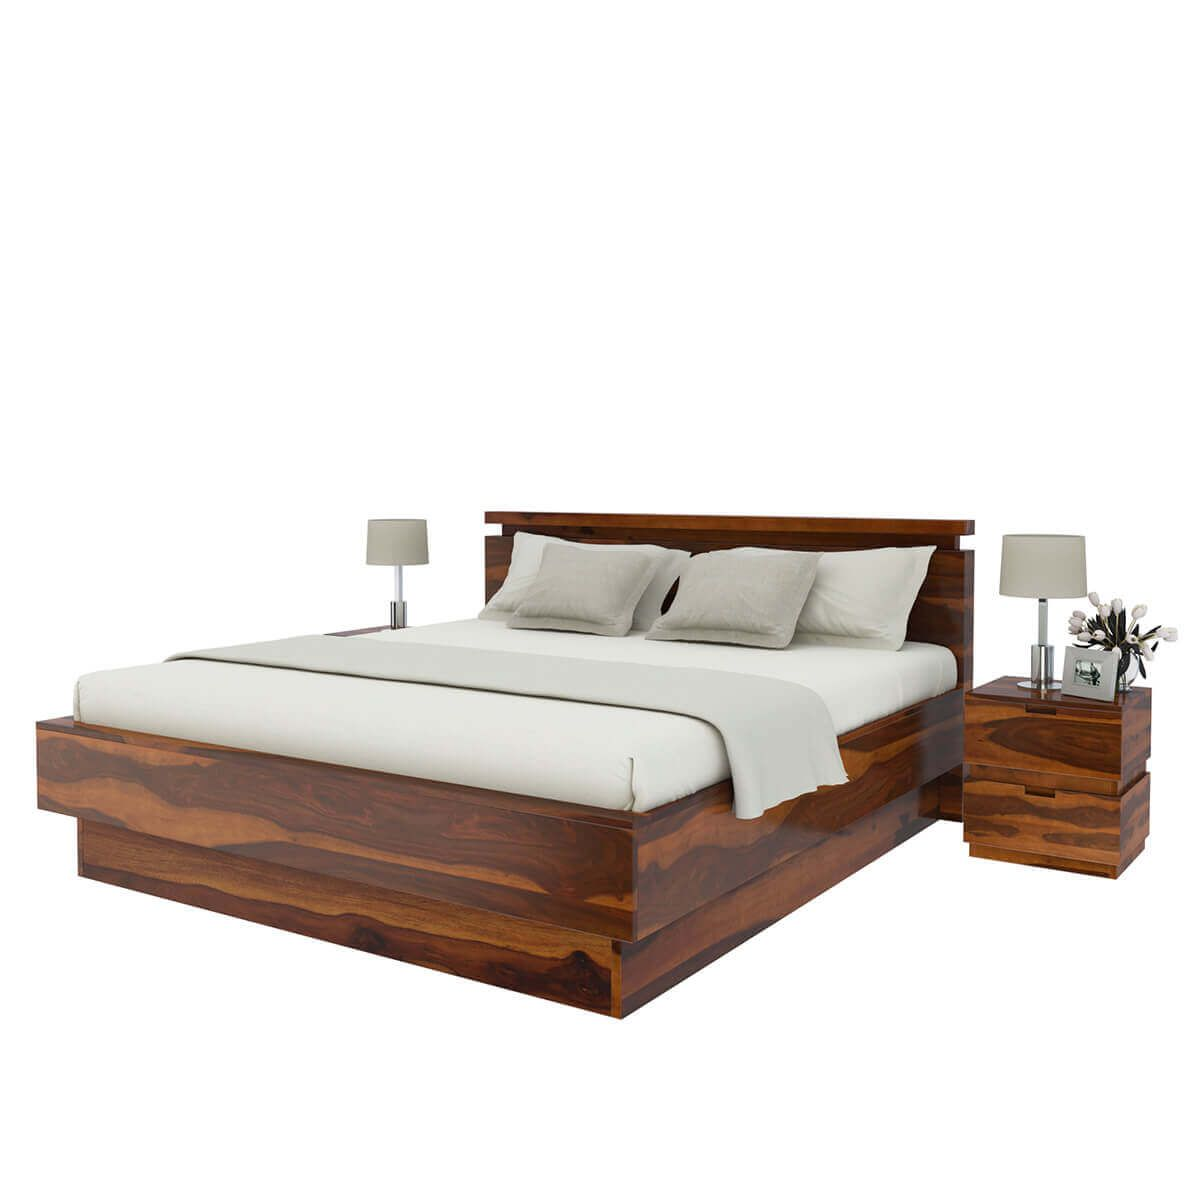 Modern Simplicity Solid Wood Full Size Platform Bed Wooden Bed Design Bedroom Bed Design Simple Bed Designs